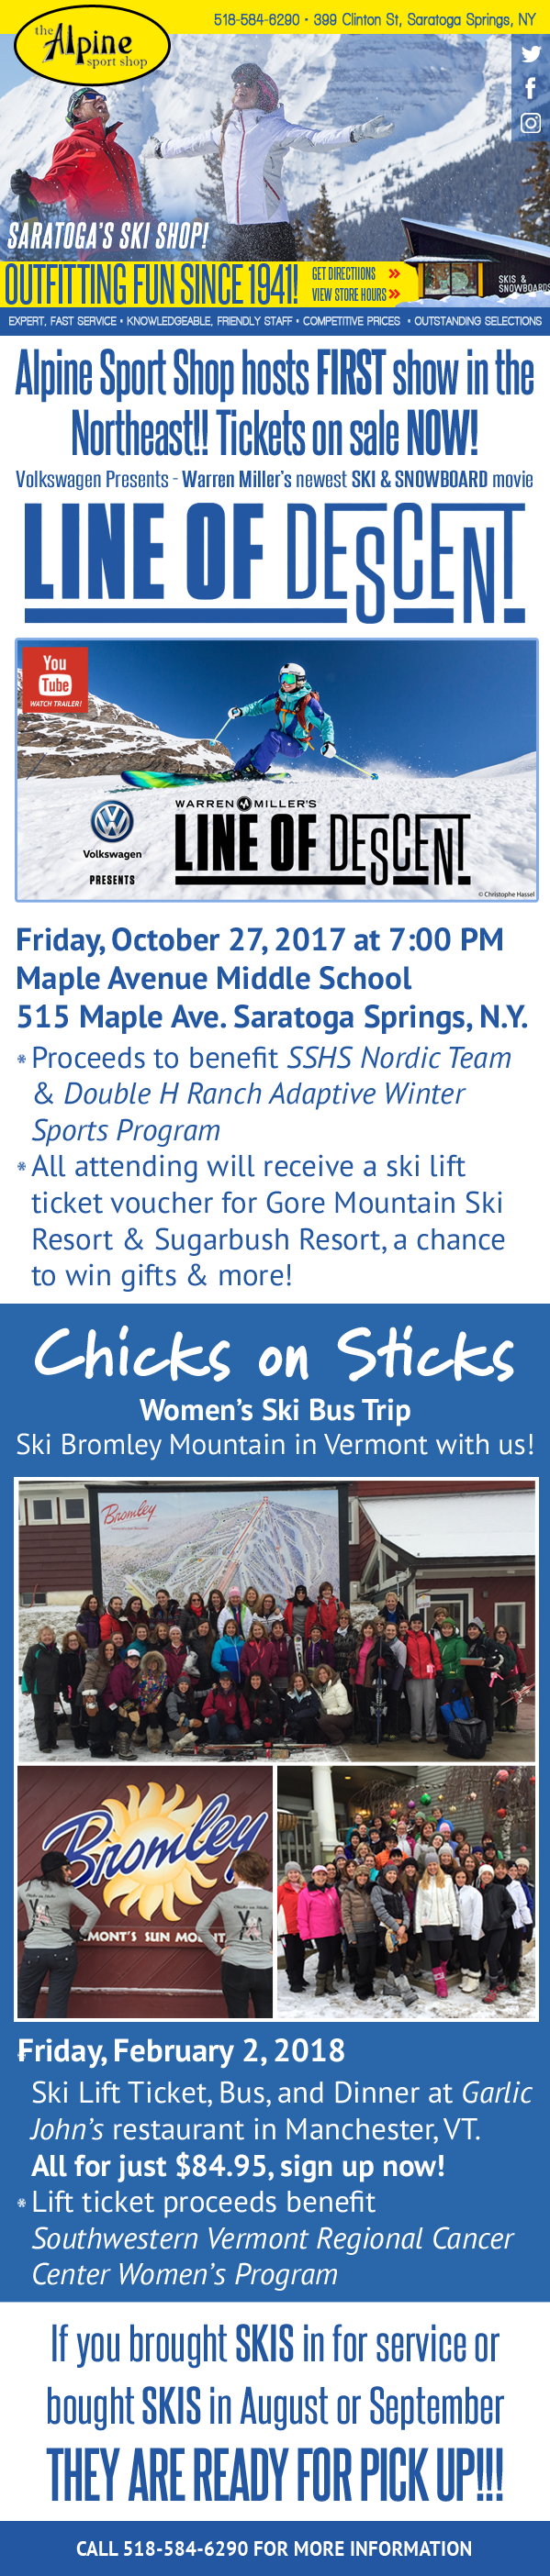 FREE SKI Lift Ticket Vouchers at Warren Miller Movie on Oct. 27